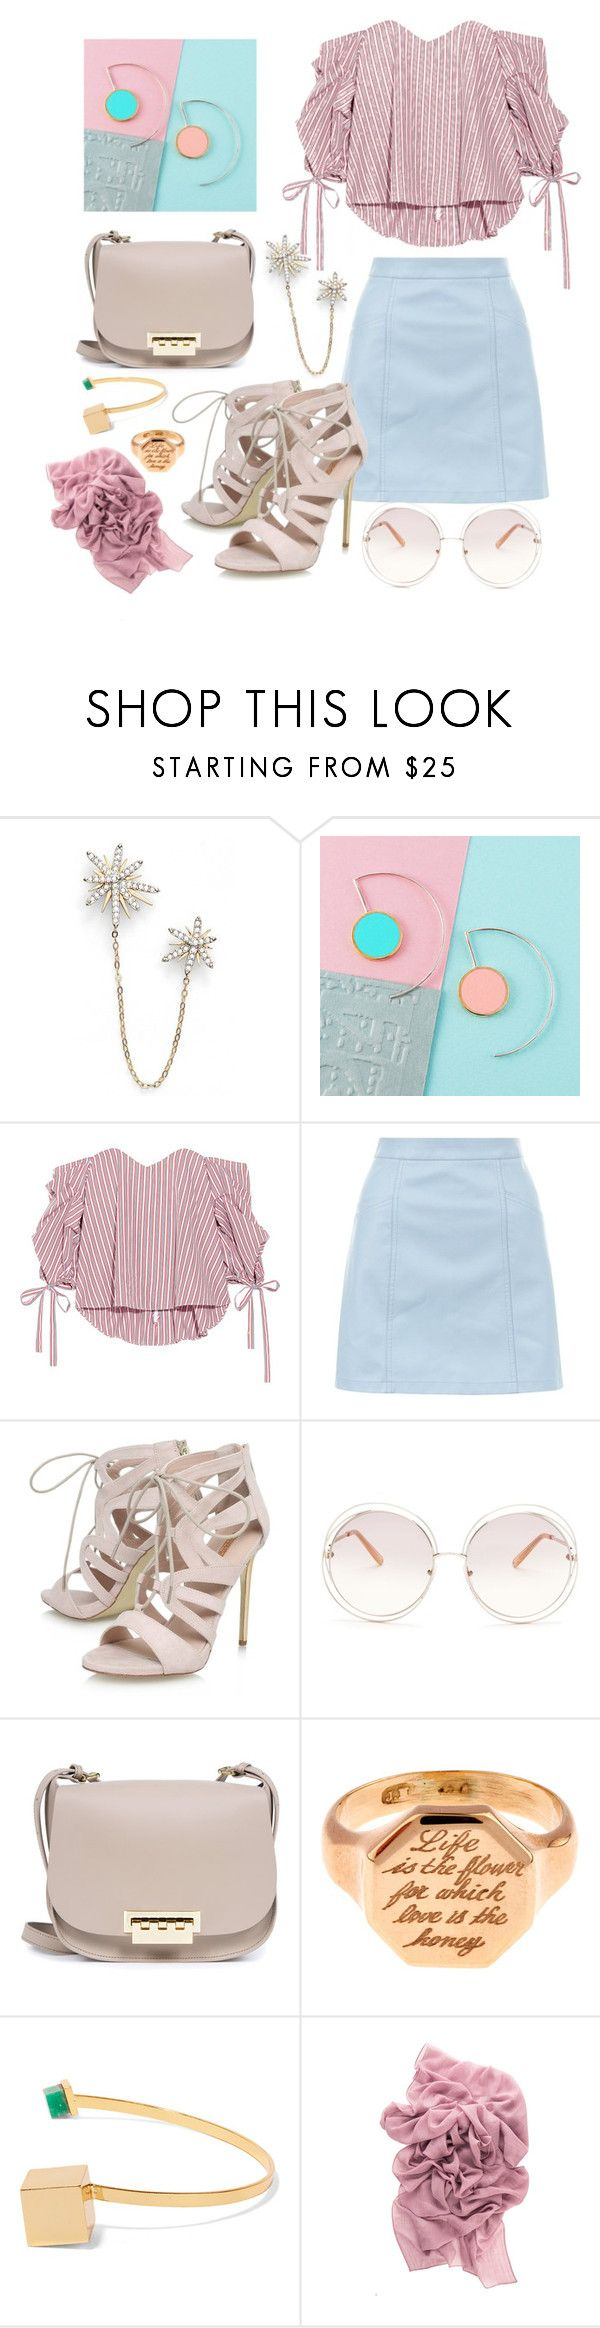 """Soft pink"" by roseuniquestyle ❤ liked on Polyvore featuring Nadri, Caroline Constas, New Look, Carvela, Chloé, ZAC Zac Posen, Annina Vogel and Paula Mendoza"